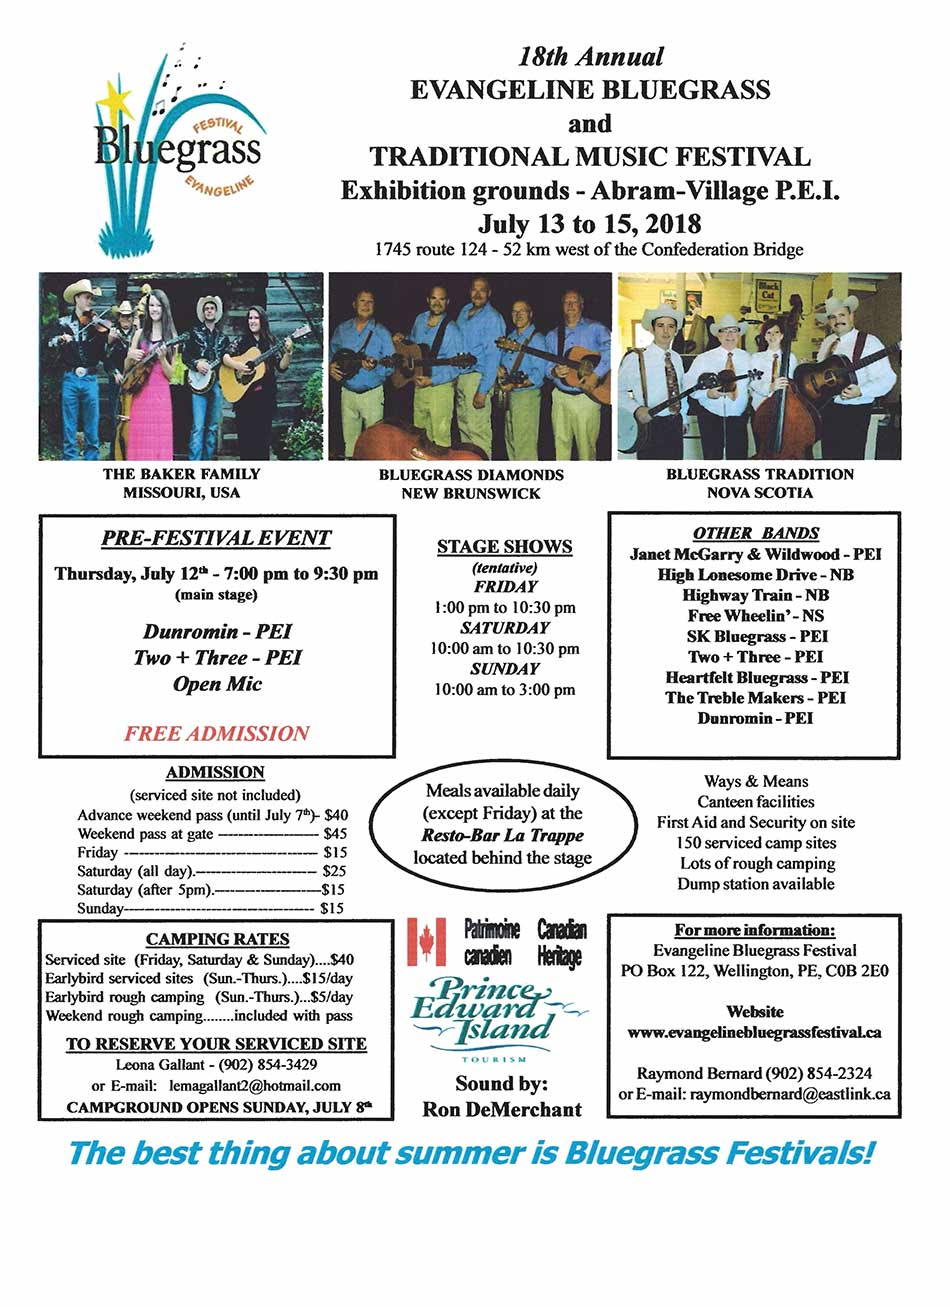 Evangeline Bluegrass and Traditional Music Festival Flyer